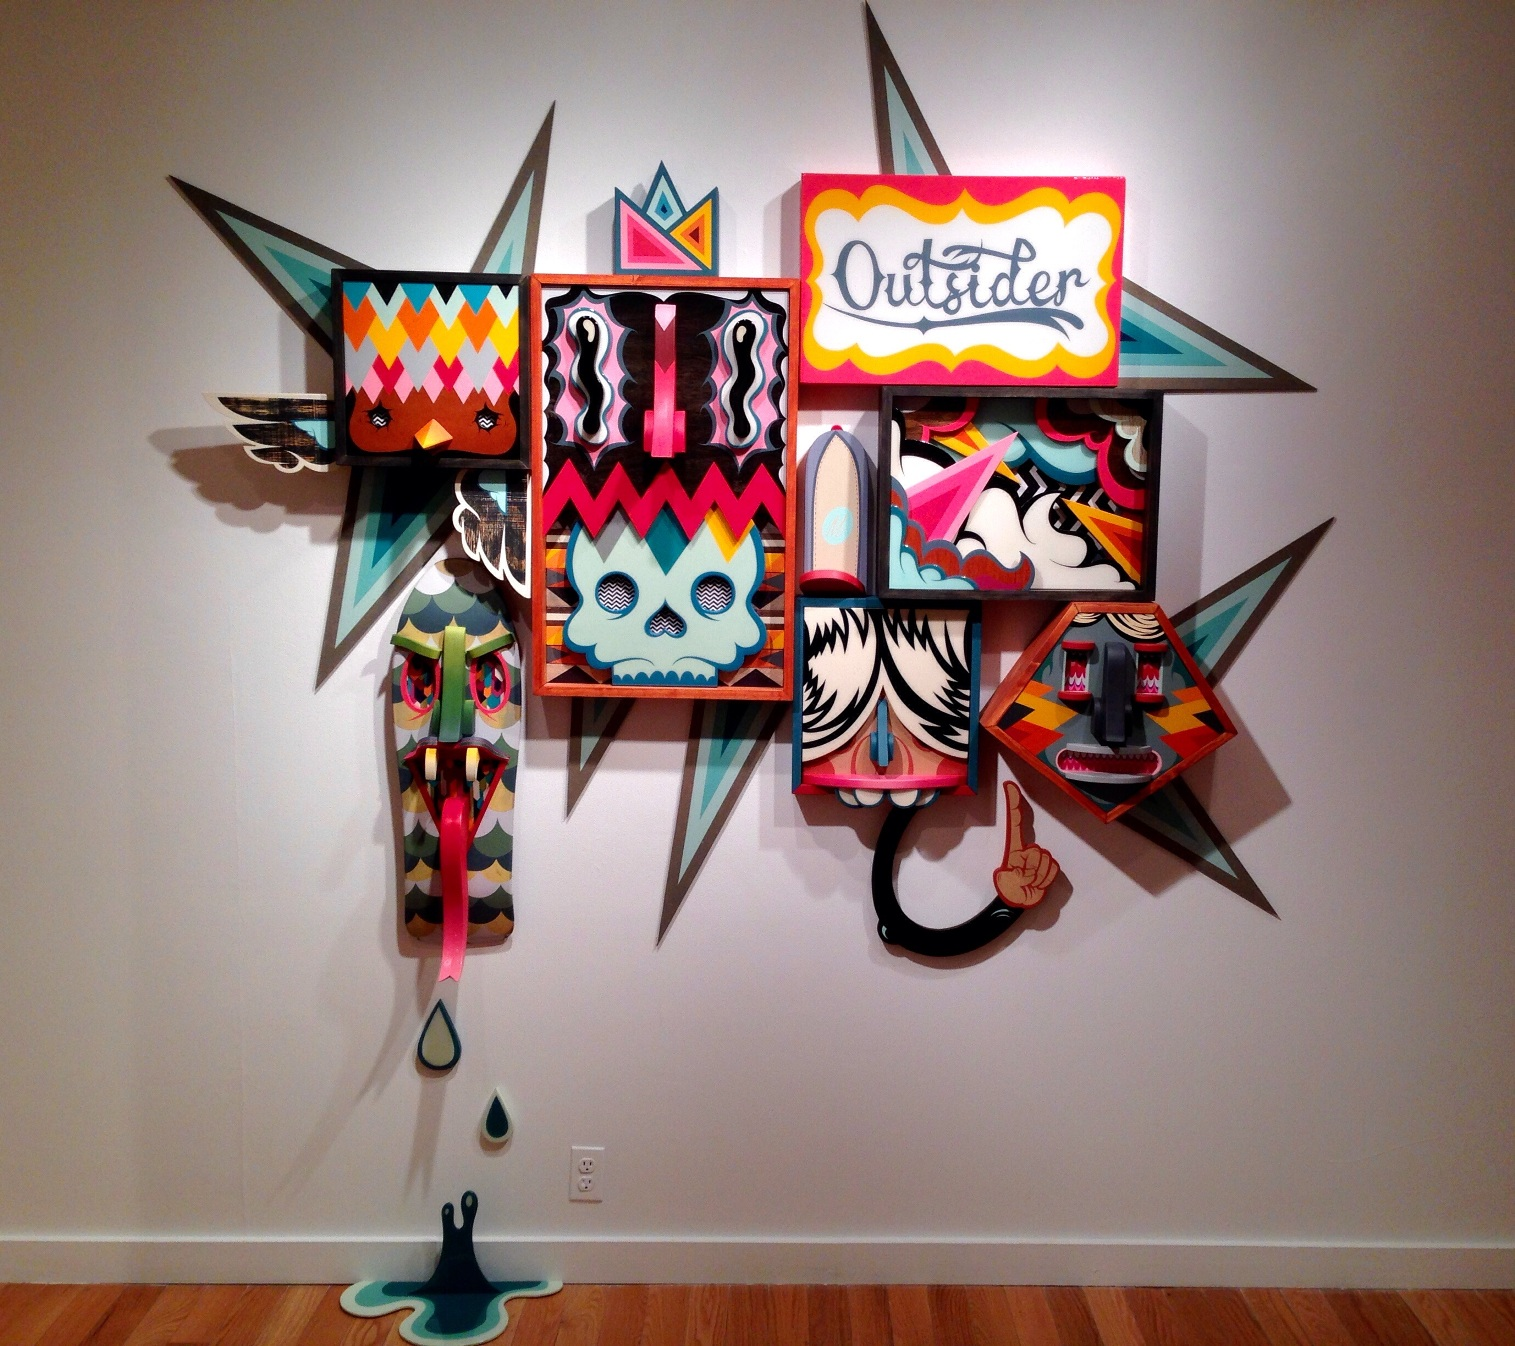 8 Alex Yanes popart tridimensional objects sculptures american art design sztuka amerykanska